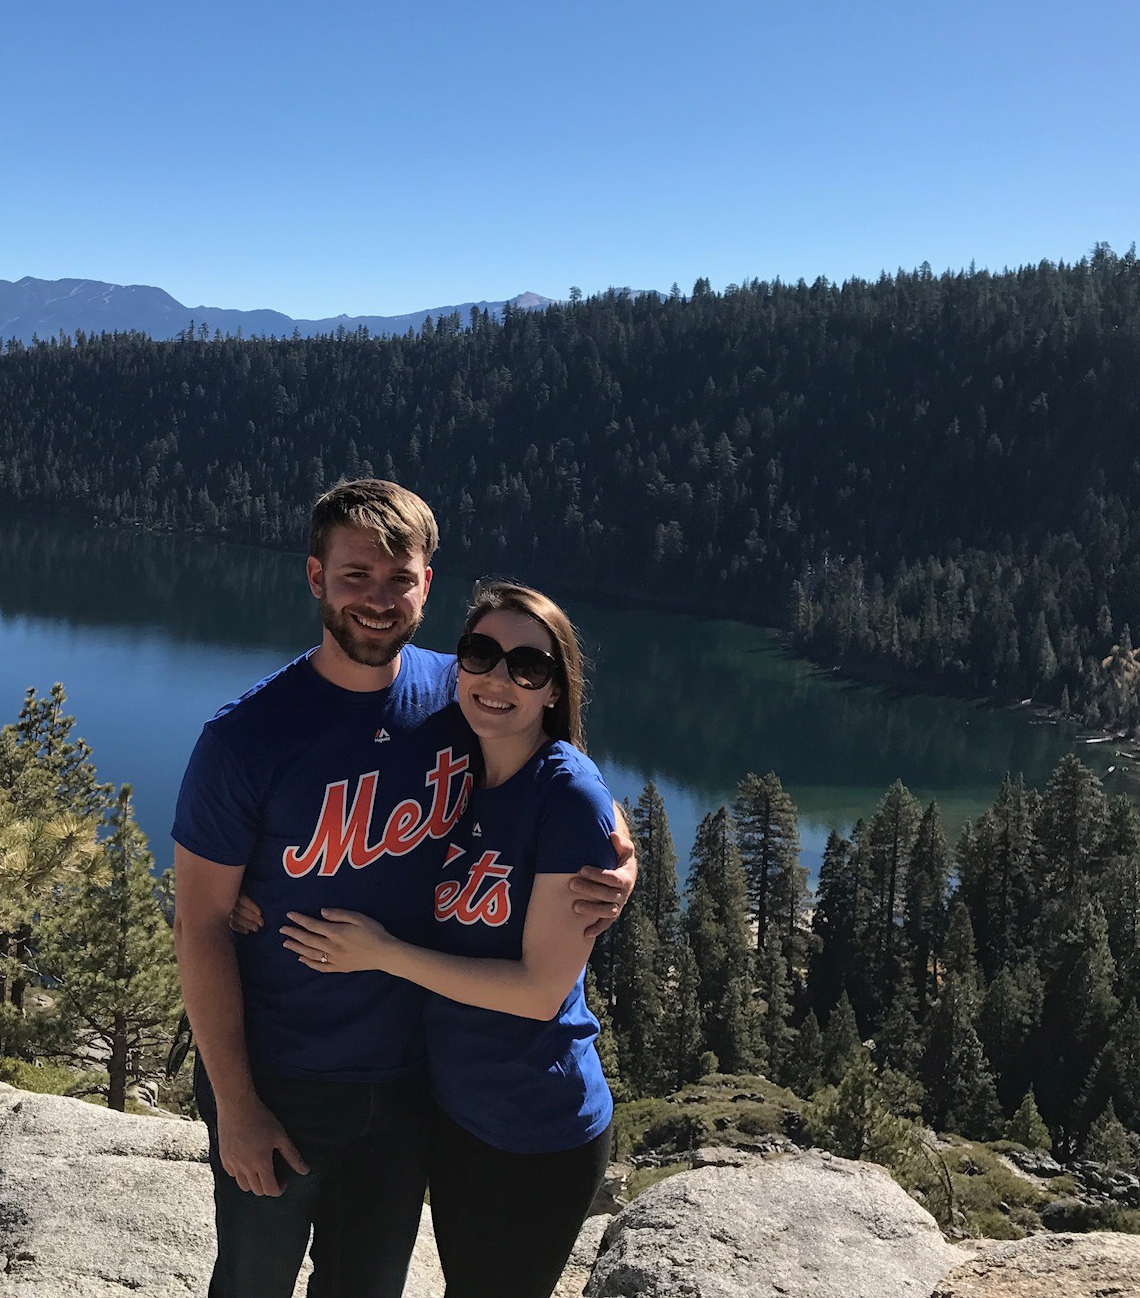 Atop Emerald Bay (in our Mets shirts from my friend Kristina!)